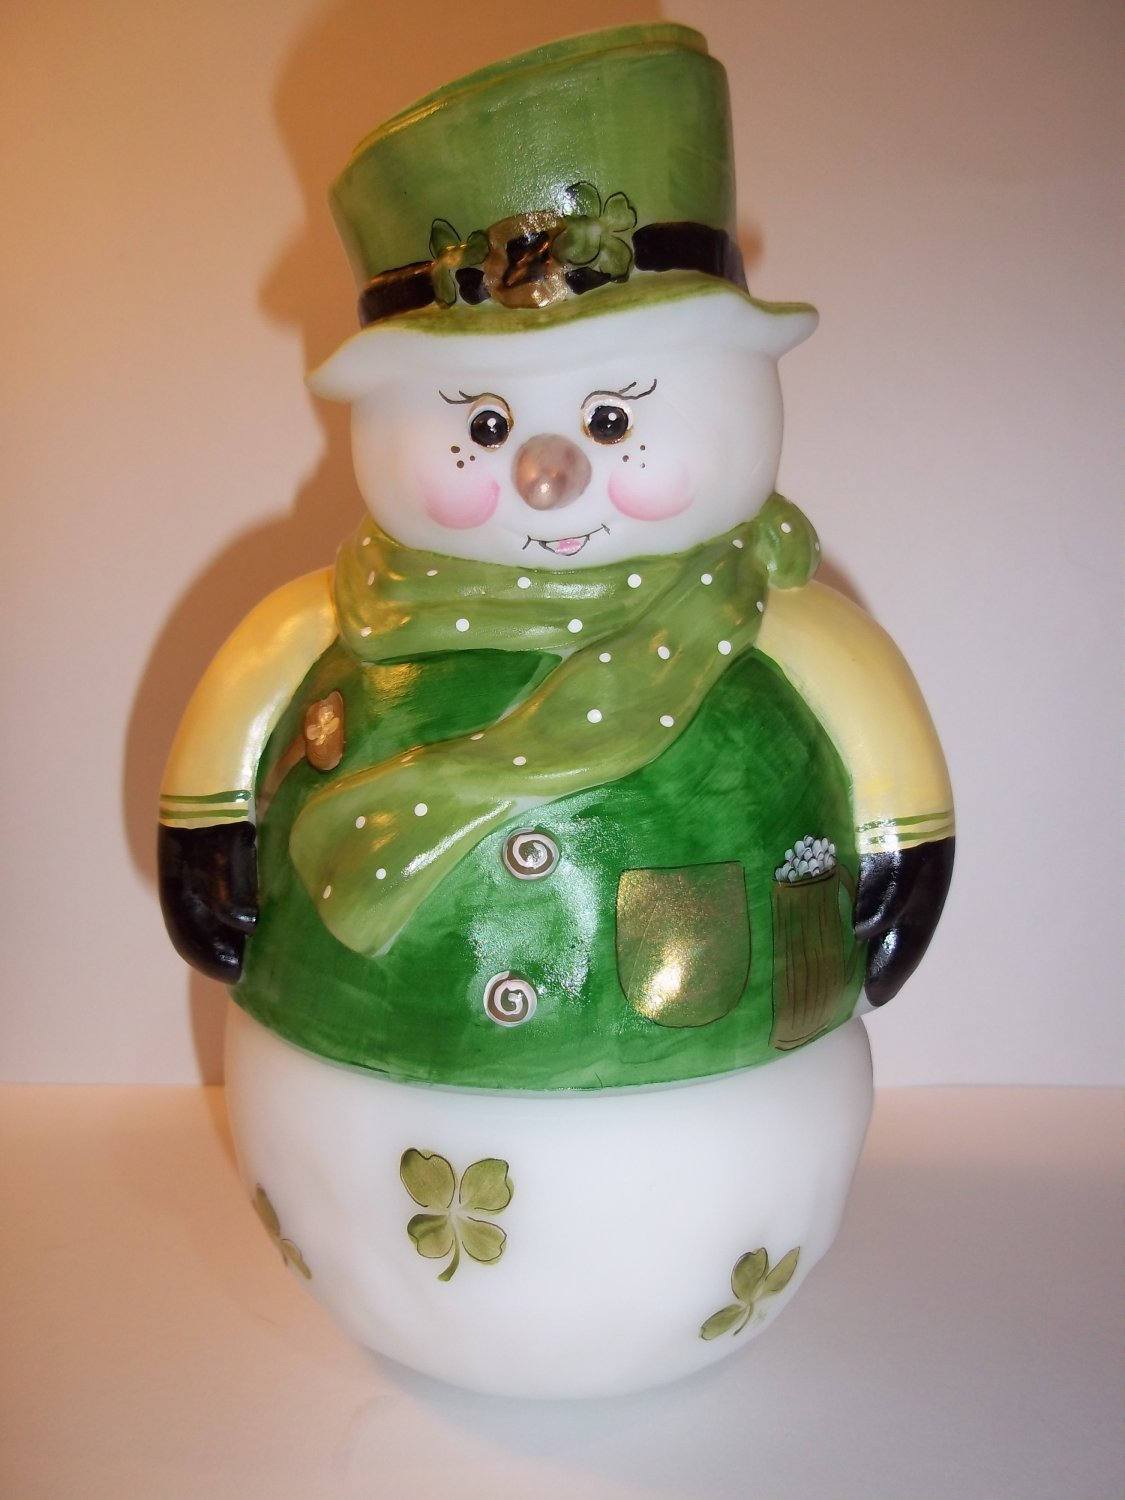 Fenton Glass Snowman Fairy Light Luck of the Irish St. Patrick's Day LE GSE #4 of 14